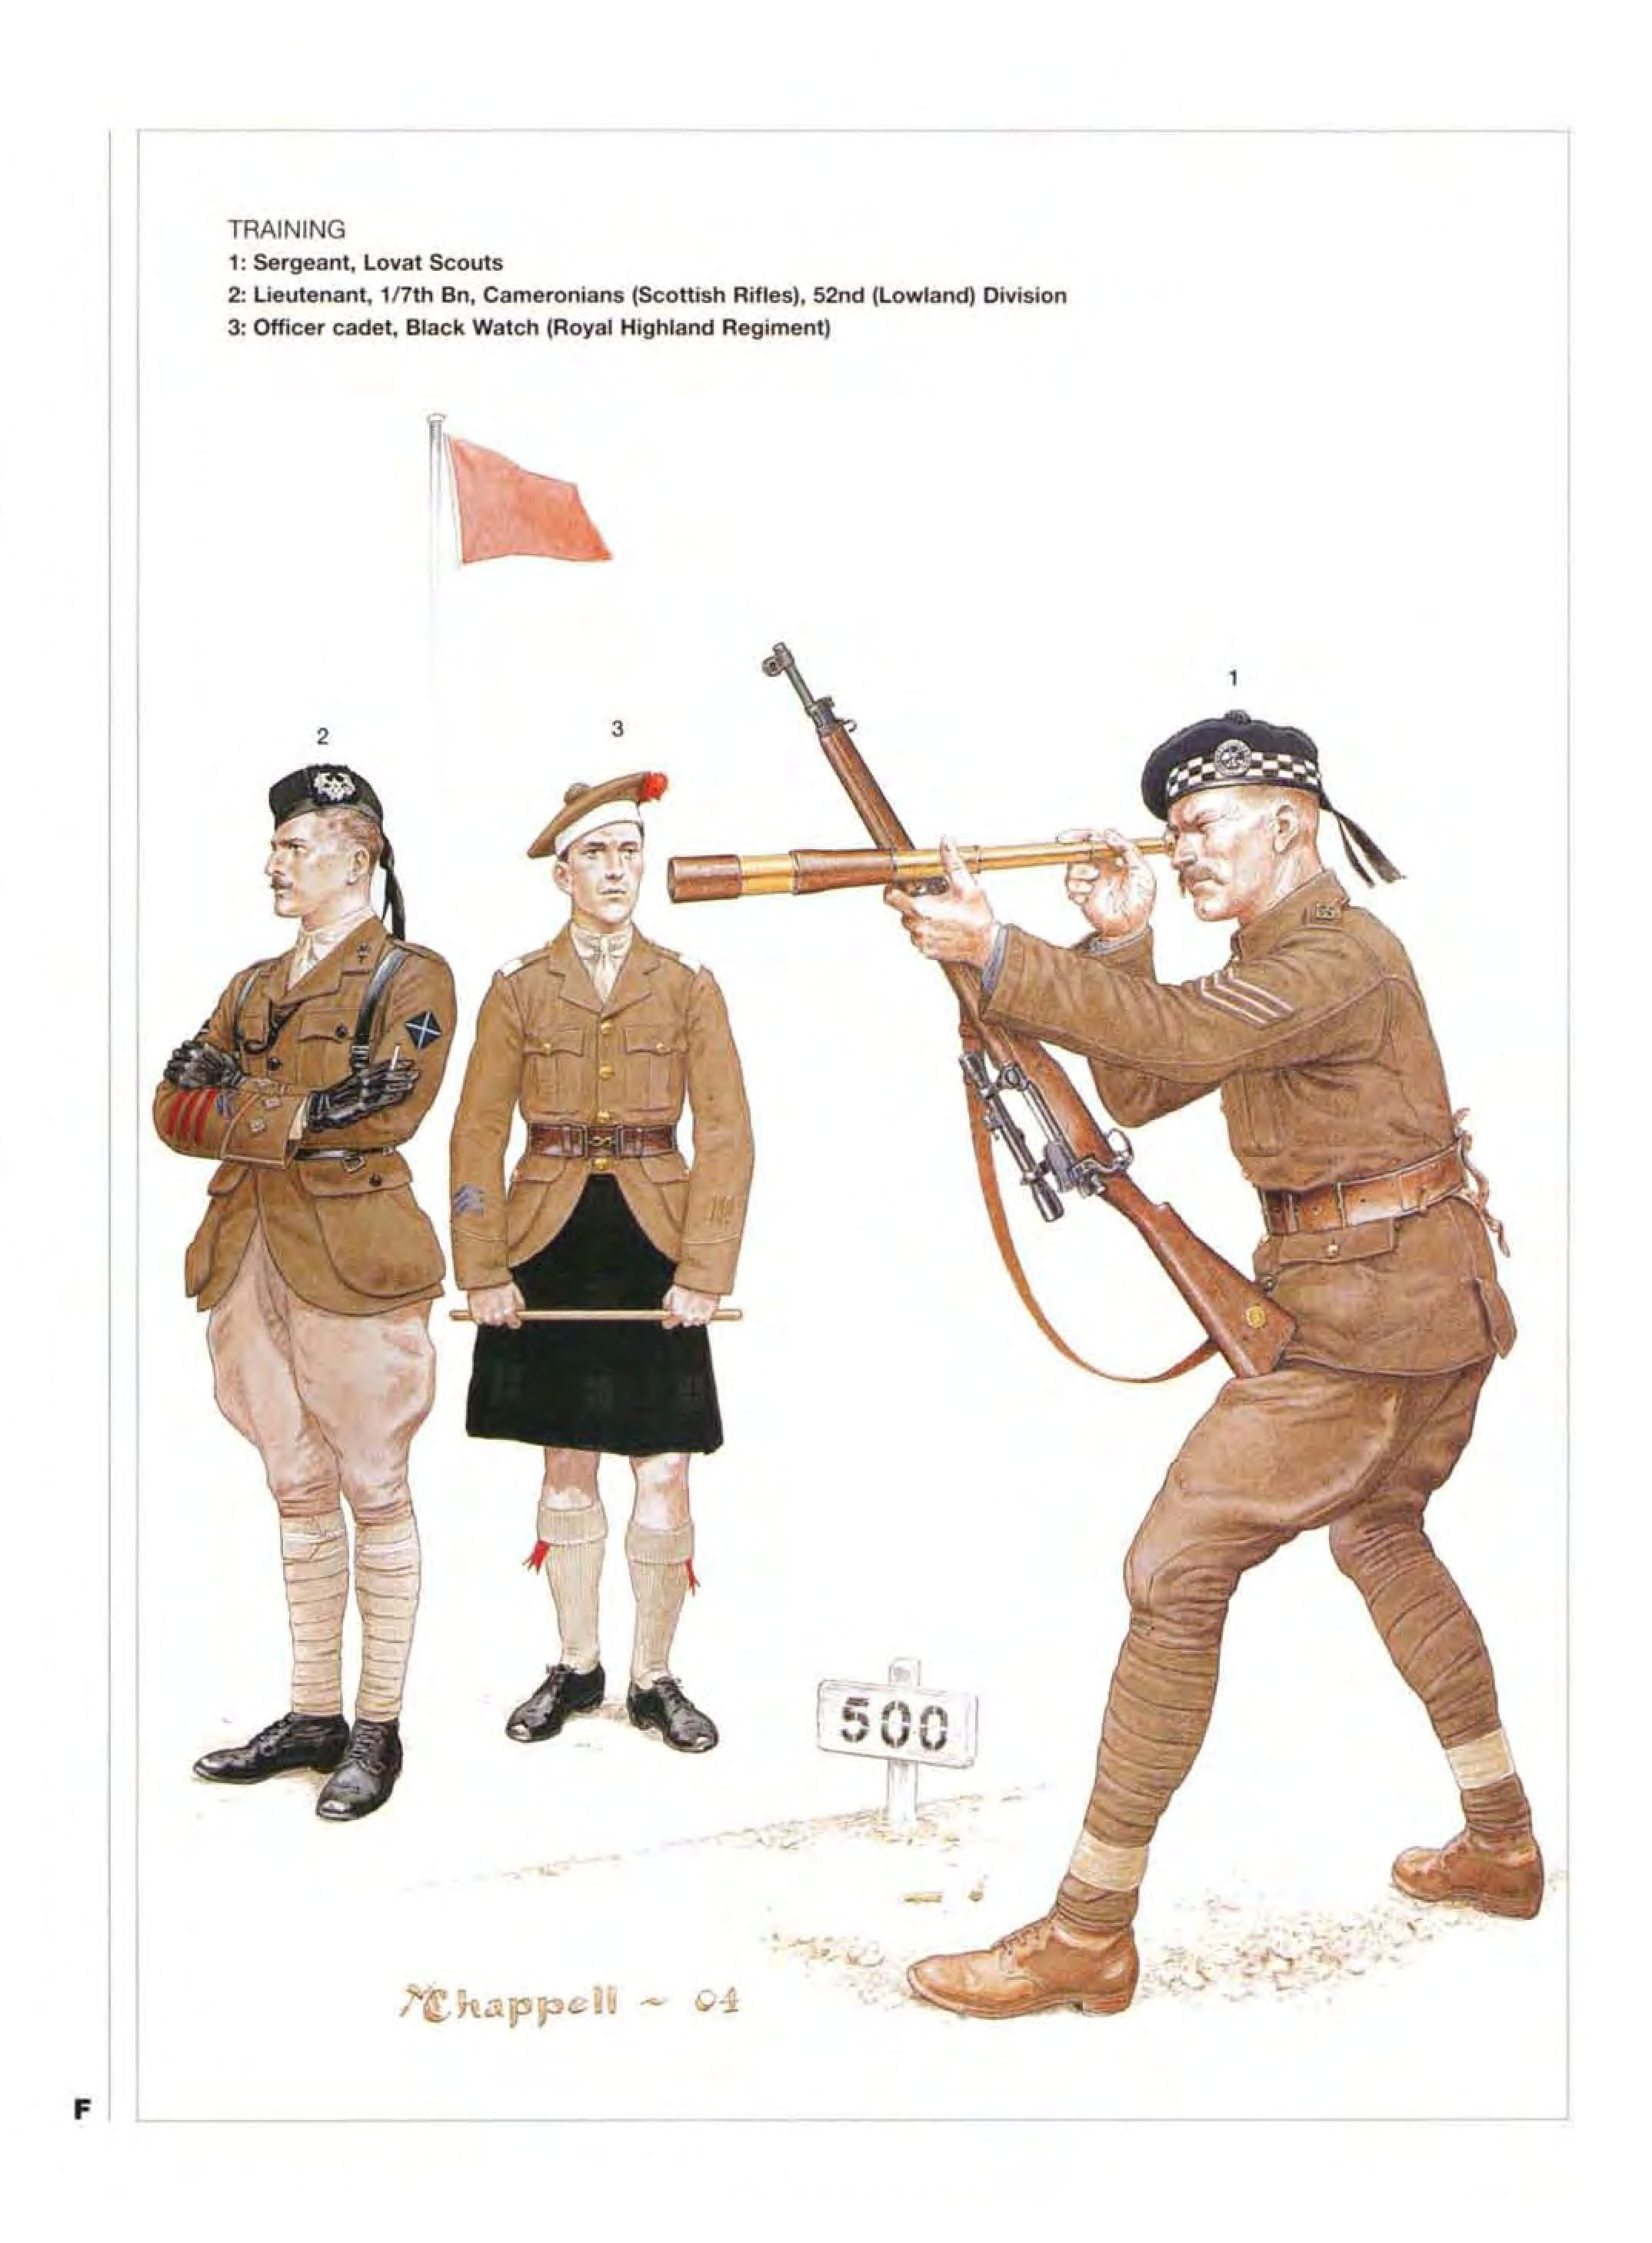 Training 1 Sergeant Lovat Scouts 2 Lieutenant 1 7th Bn Cameronians Scottish Rifles 52nd Lowland Divis Army Poster Military History Military Diorama